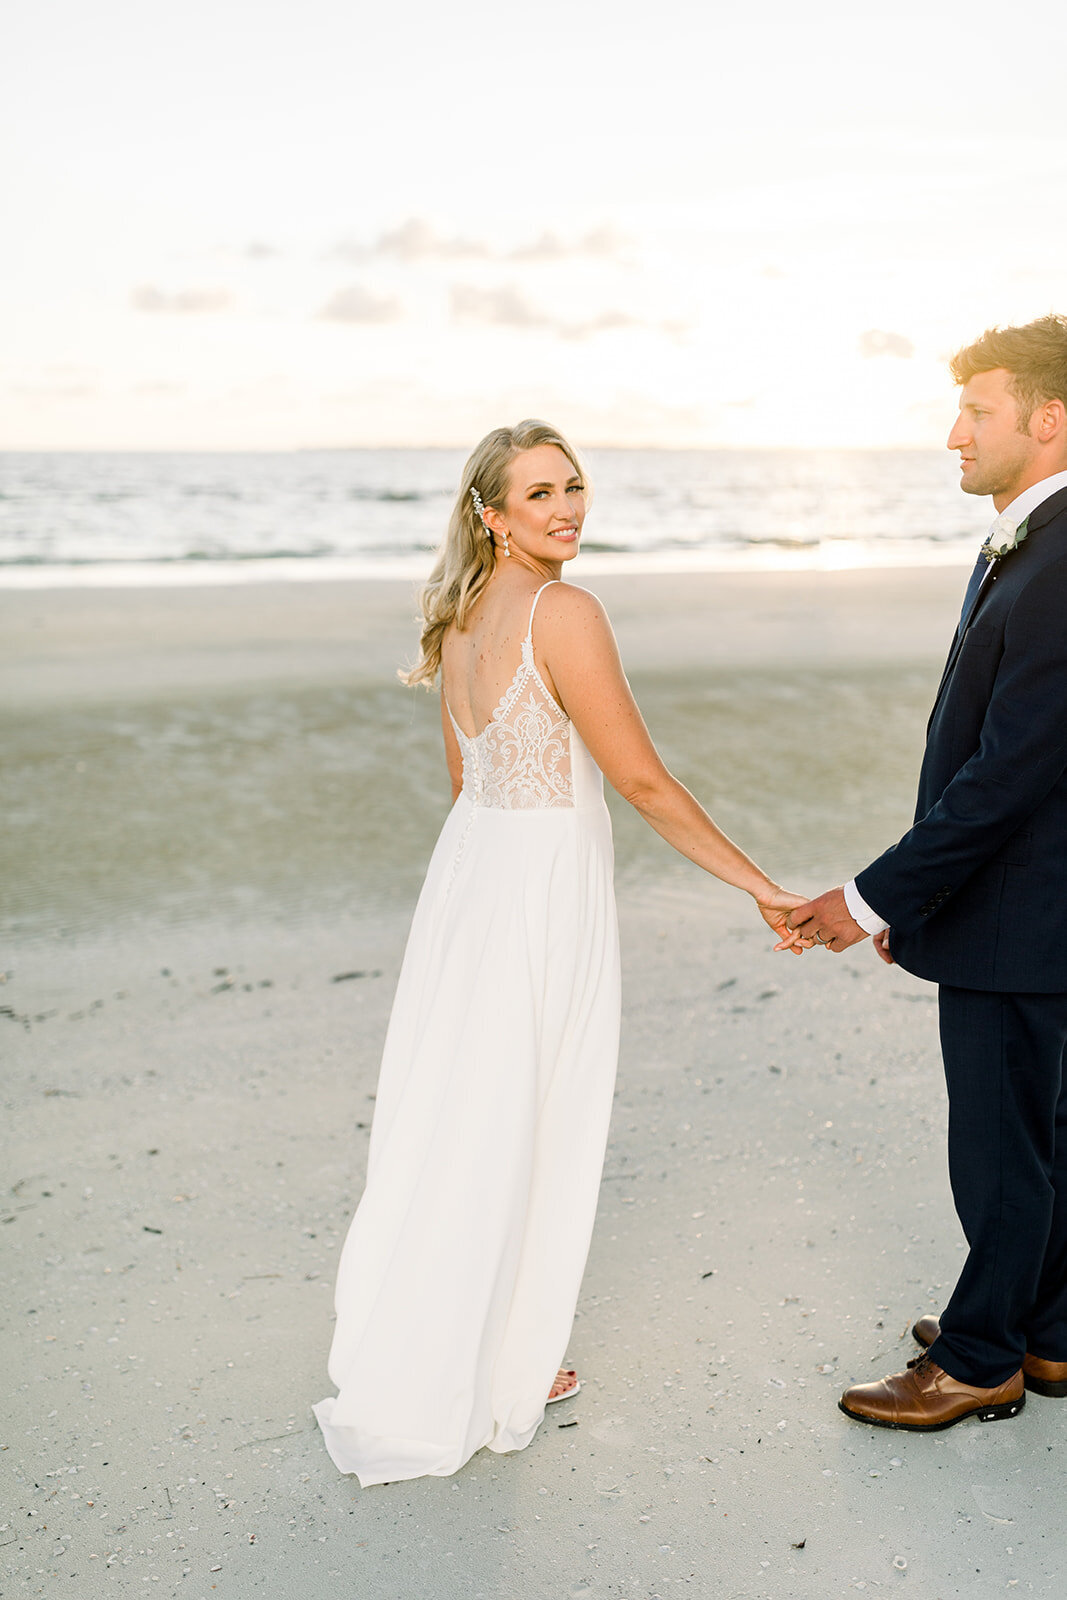 alex-mike-bowditch-beach-fort-myers-wedding-photos-1312